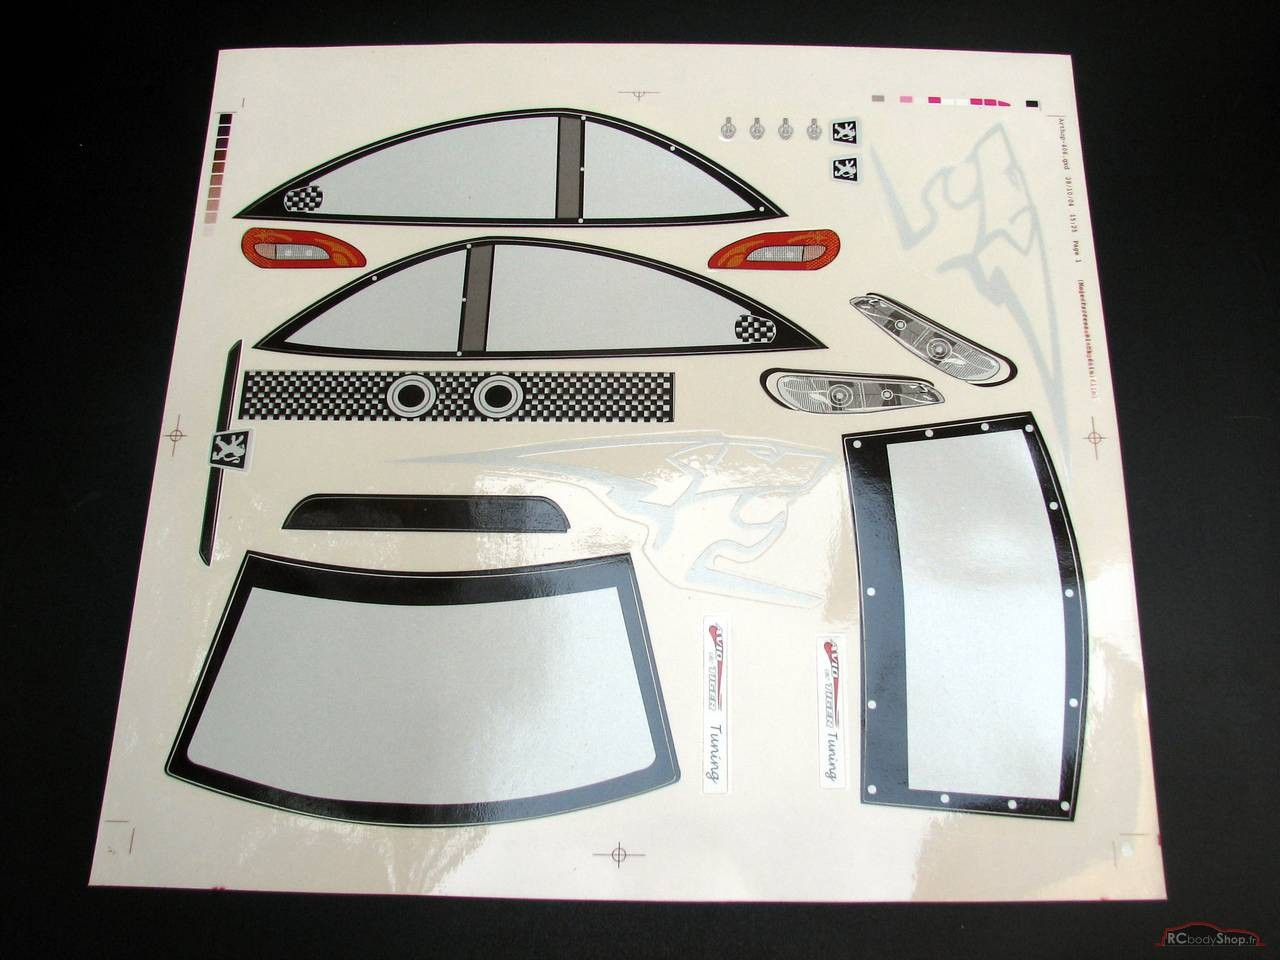 Planche peugeot sport 406 coupe tunning 1:10 large